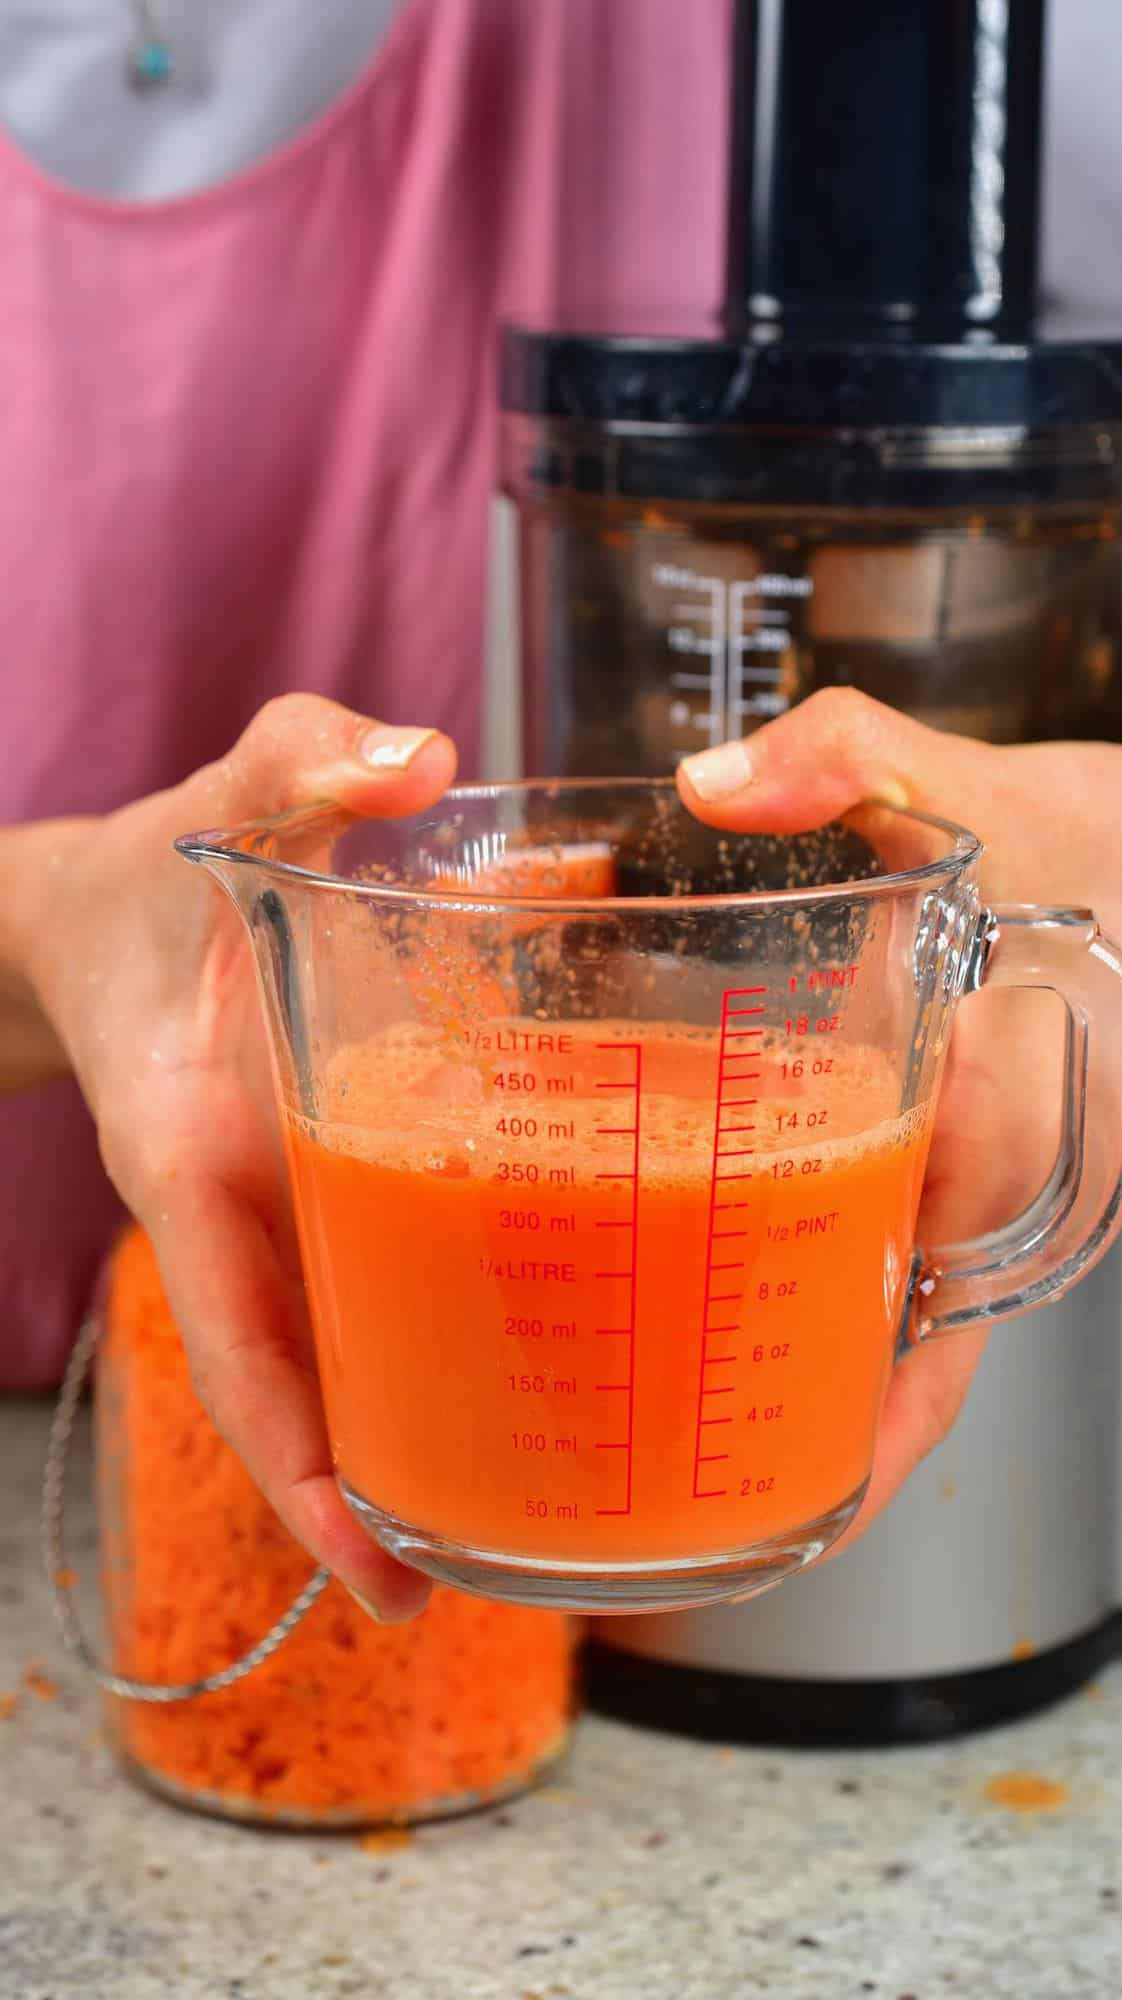 Carrot juice in a measuring cup with a juicer behind it